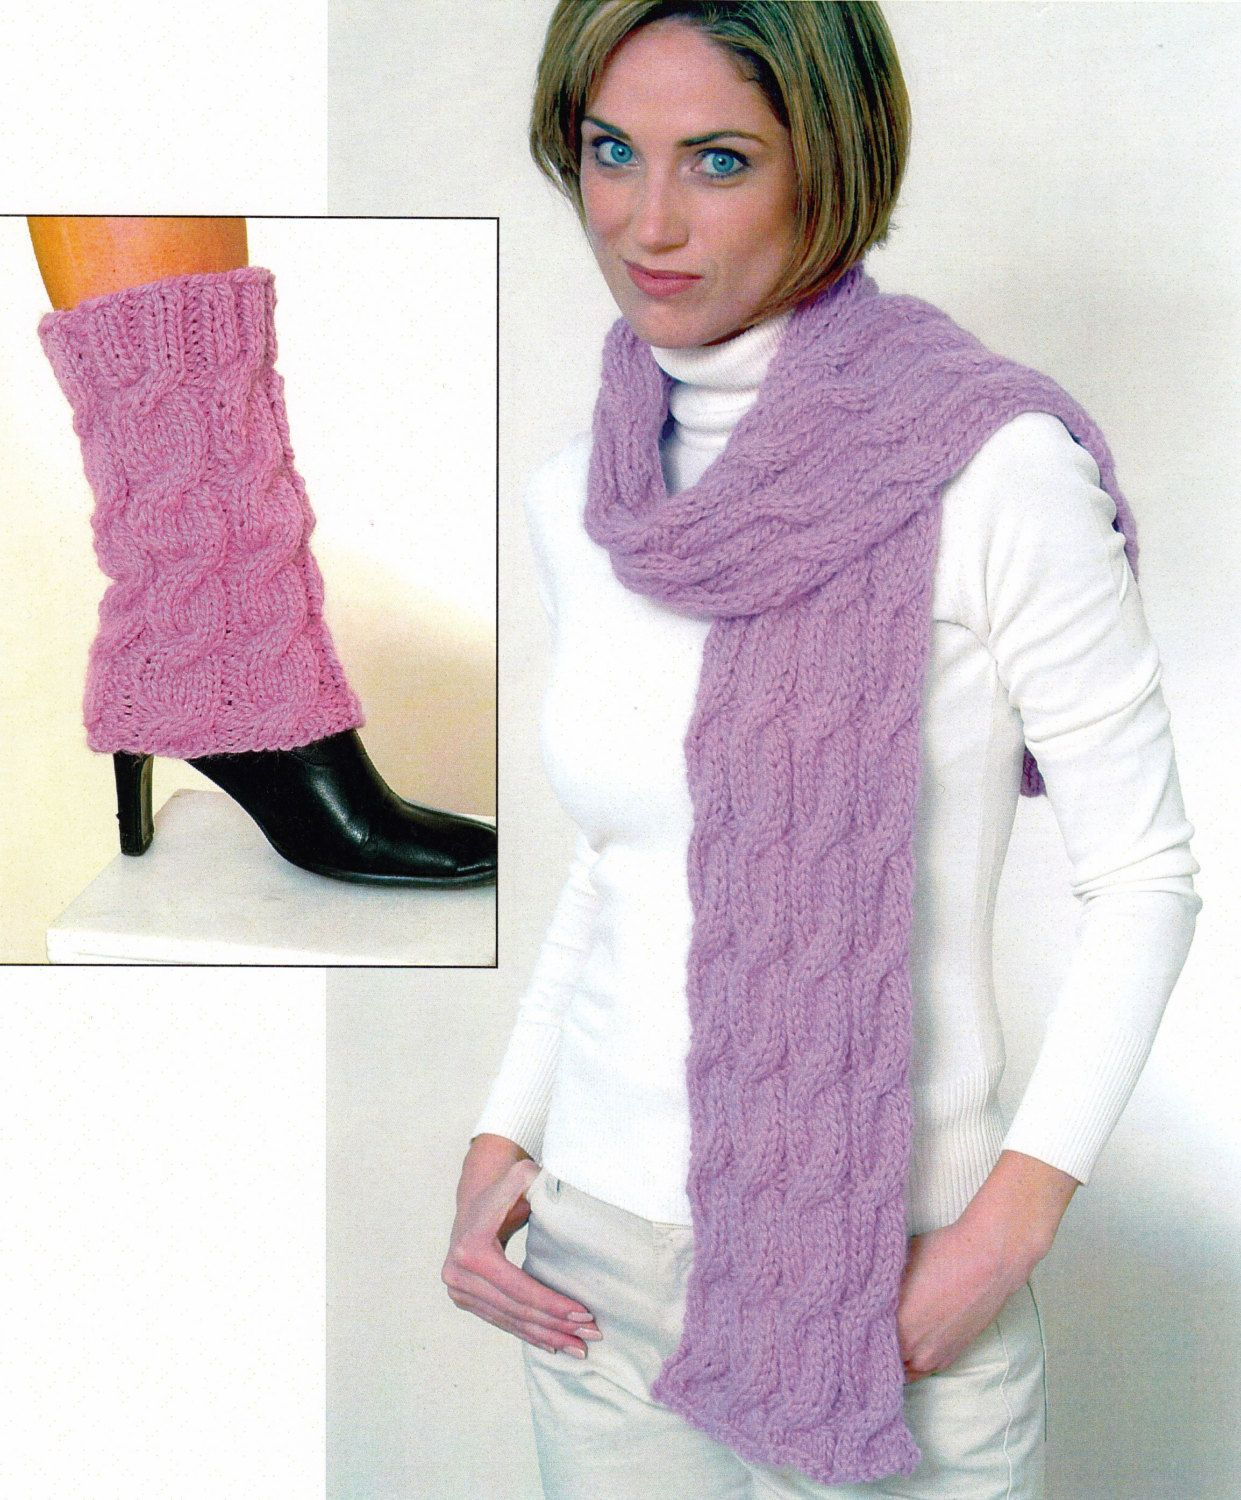 Cabled Scarf and Leg Warmers Knitting Pattern - Knitted Hat and Leg ...